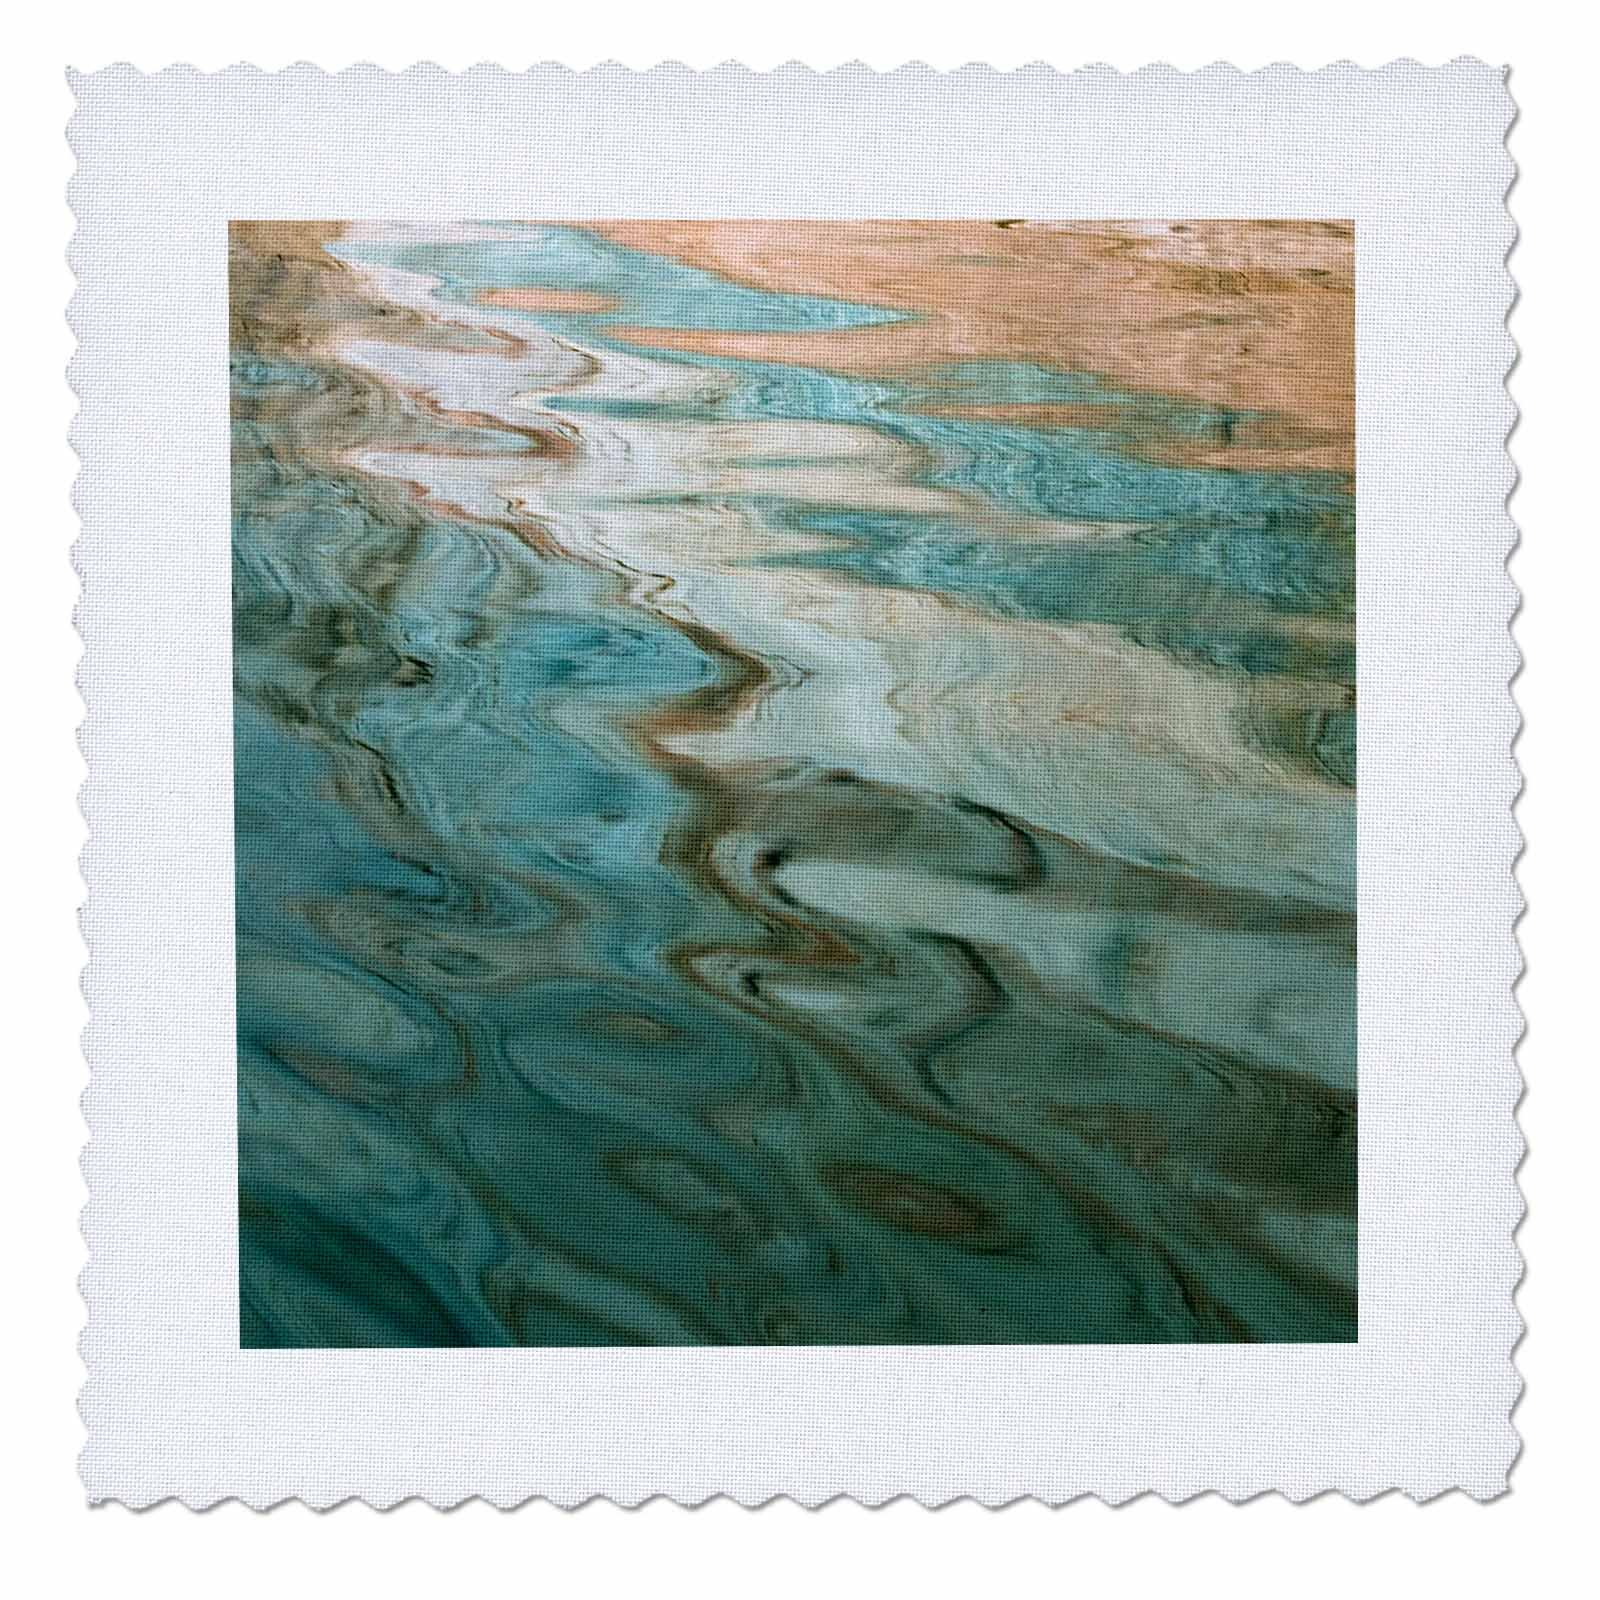 3dRose Danita Delimont - Abstracts - Utah. Colorful abstract reflections of canyon walls on Lake Powell. - 16x16 inch quilt square (qs_260239_6)